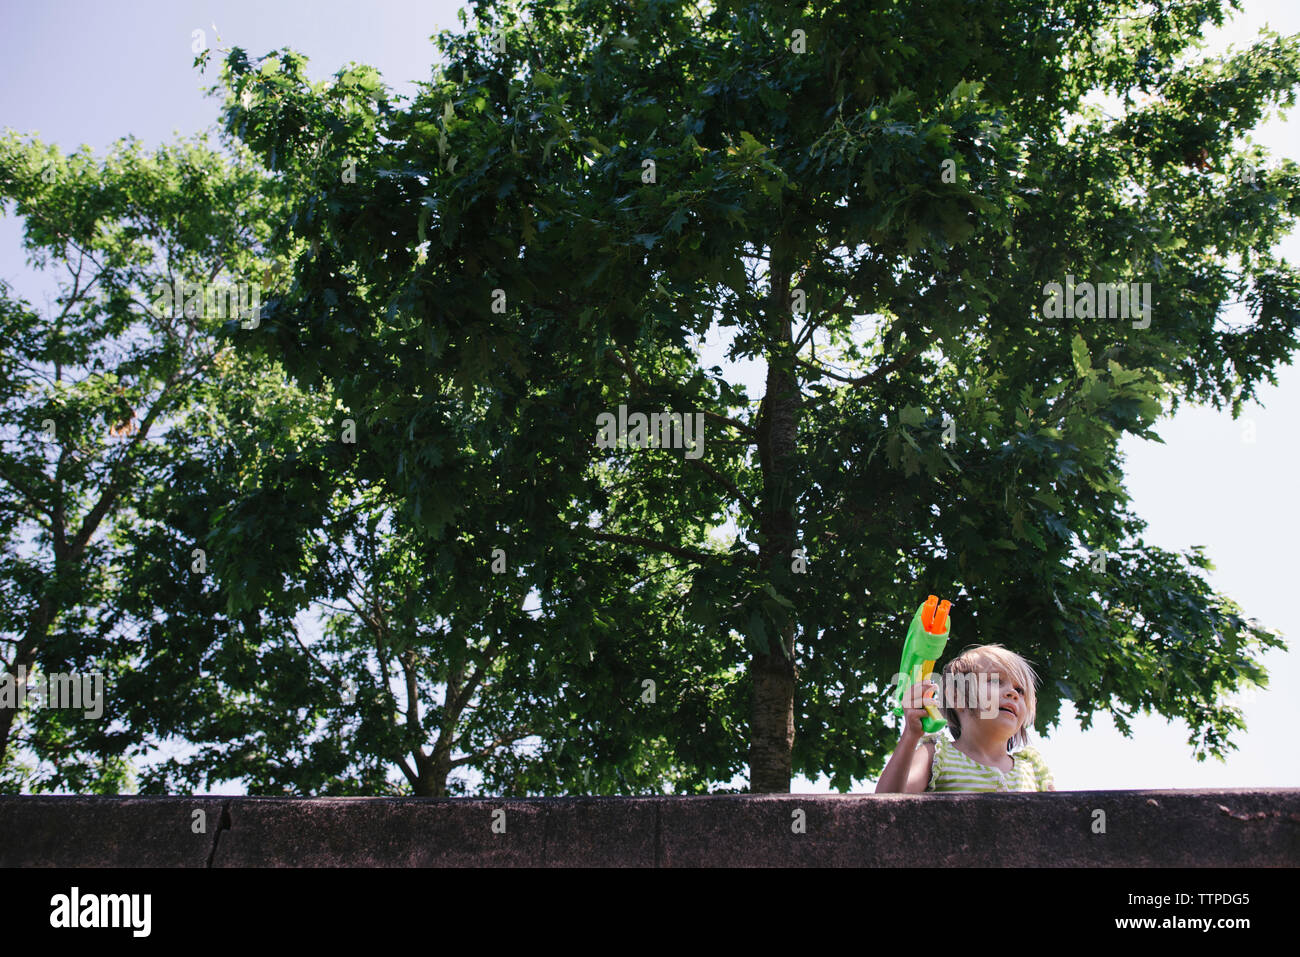 Low angle view of girl holding squirt gun against trees - Stock Image